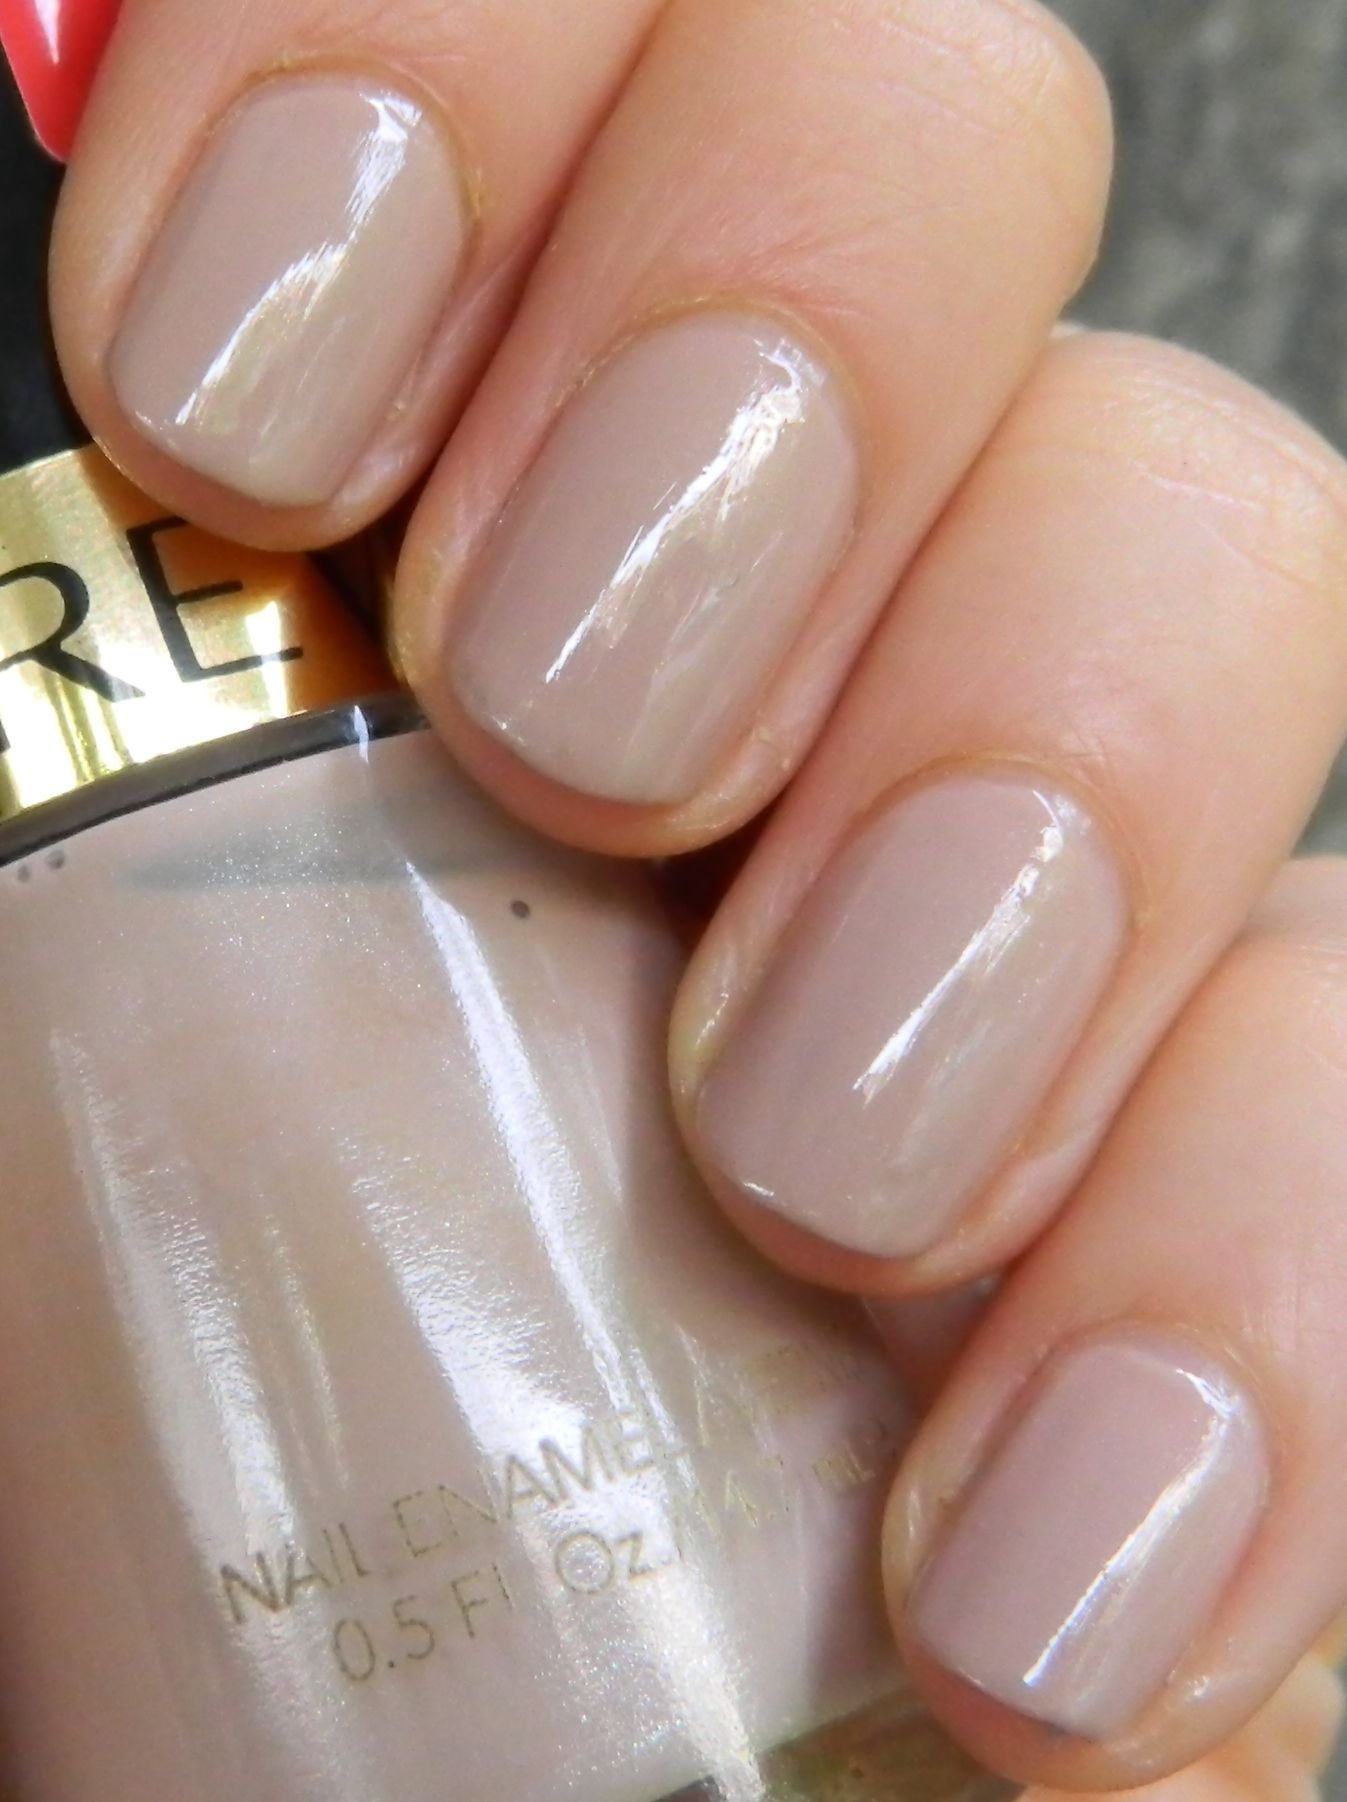 Revlon Gray Suede: Dupe for Chanel Frenzy? | Makeup & nail dupes ...